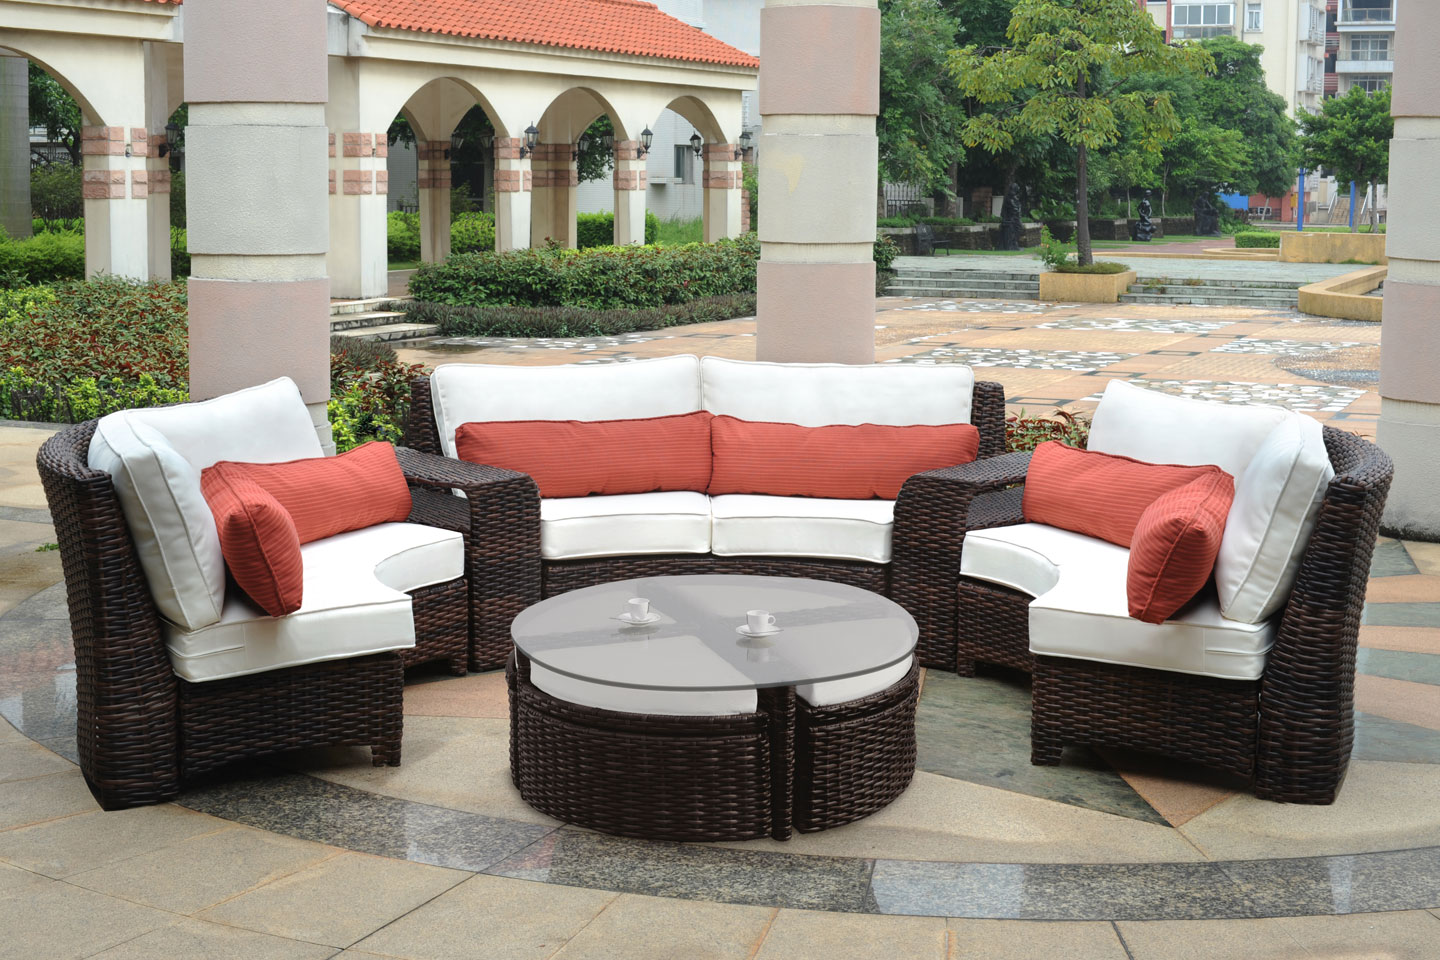 Outdoor Patio Seating Fiji Curved Outdoor Resin Wicker Round Patio